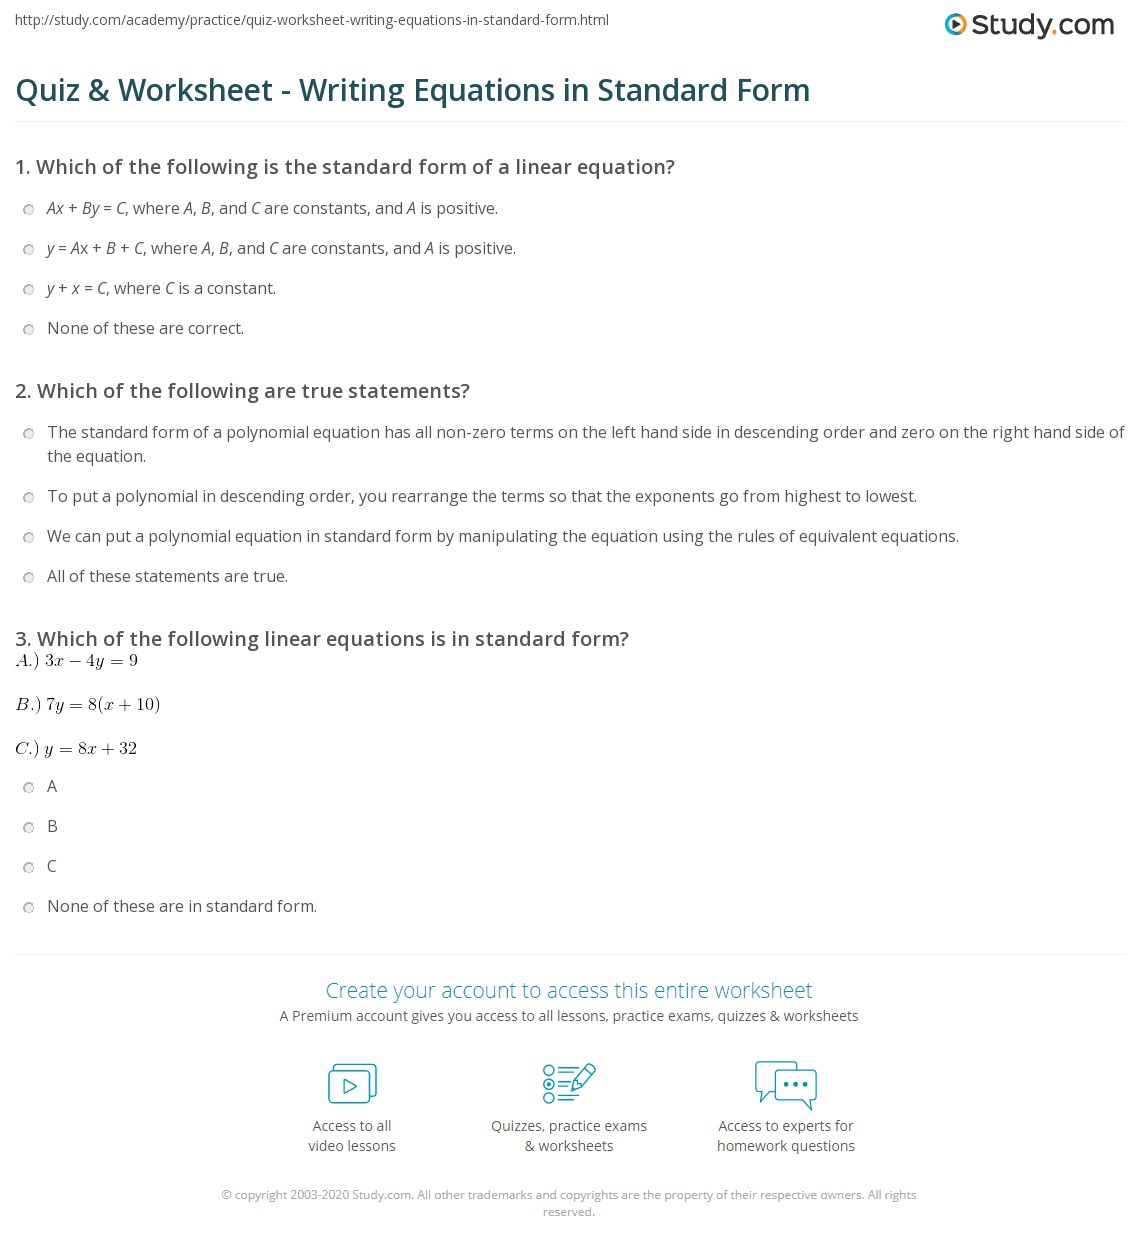 Quiz & Worksheet - Writing Equations In Standard Form